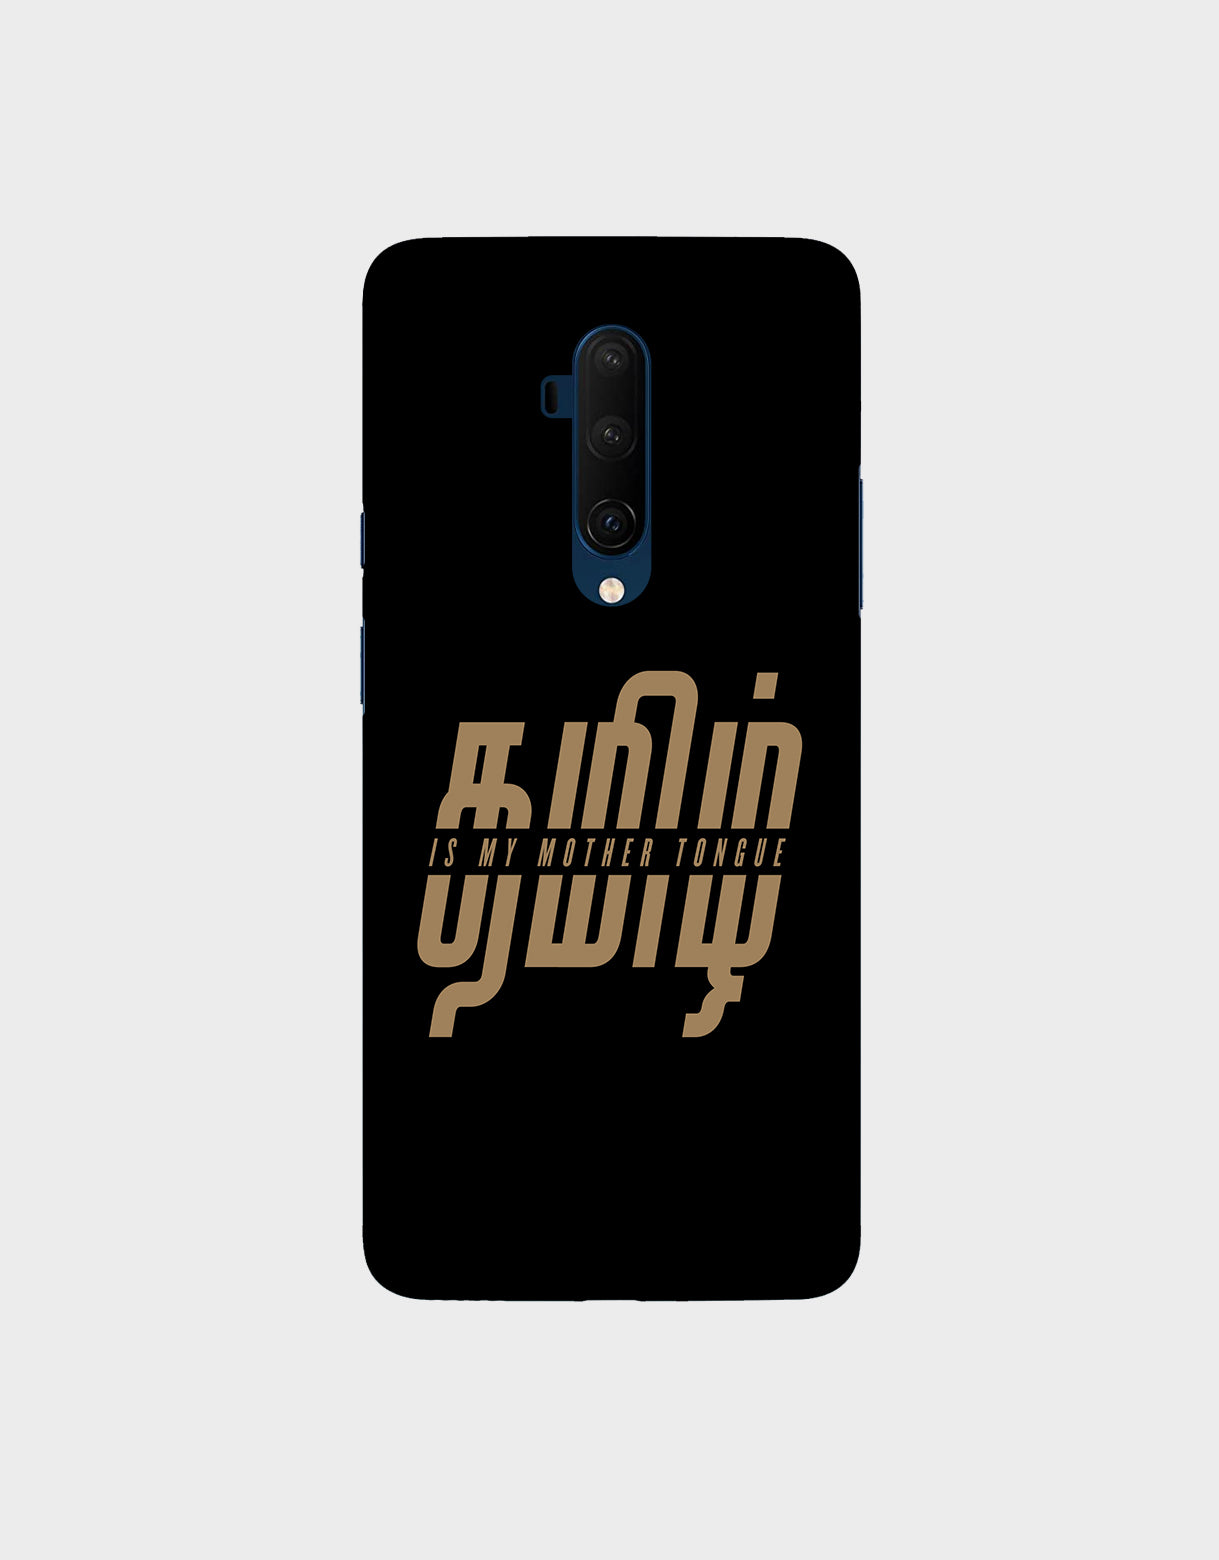 Tamil is my mother tonque -OnePlus 7T Pro Mobile covers